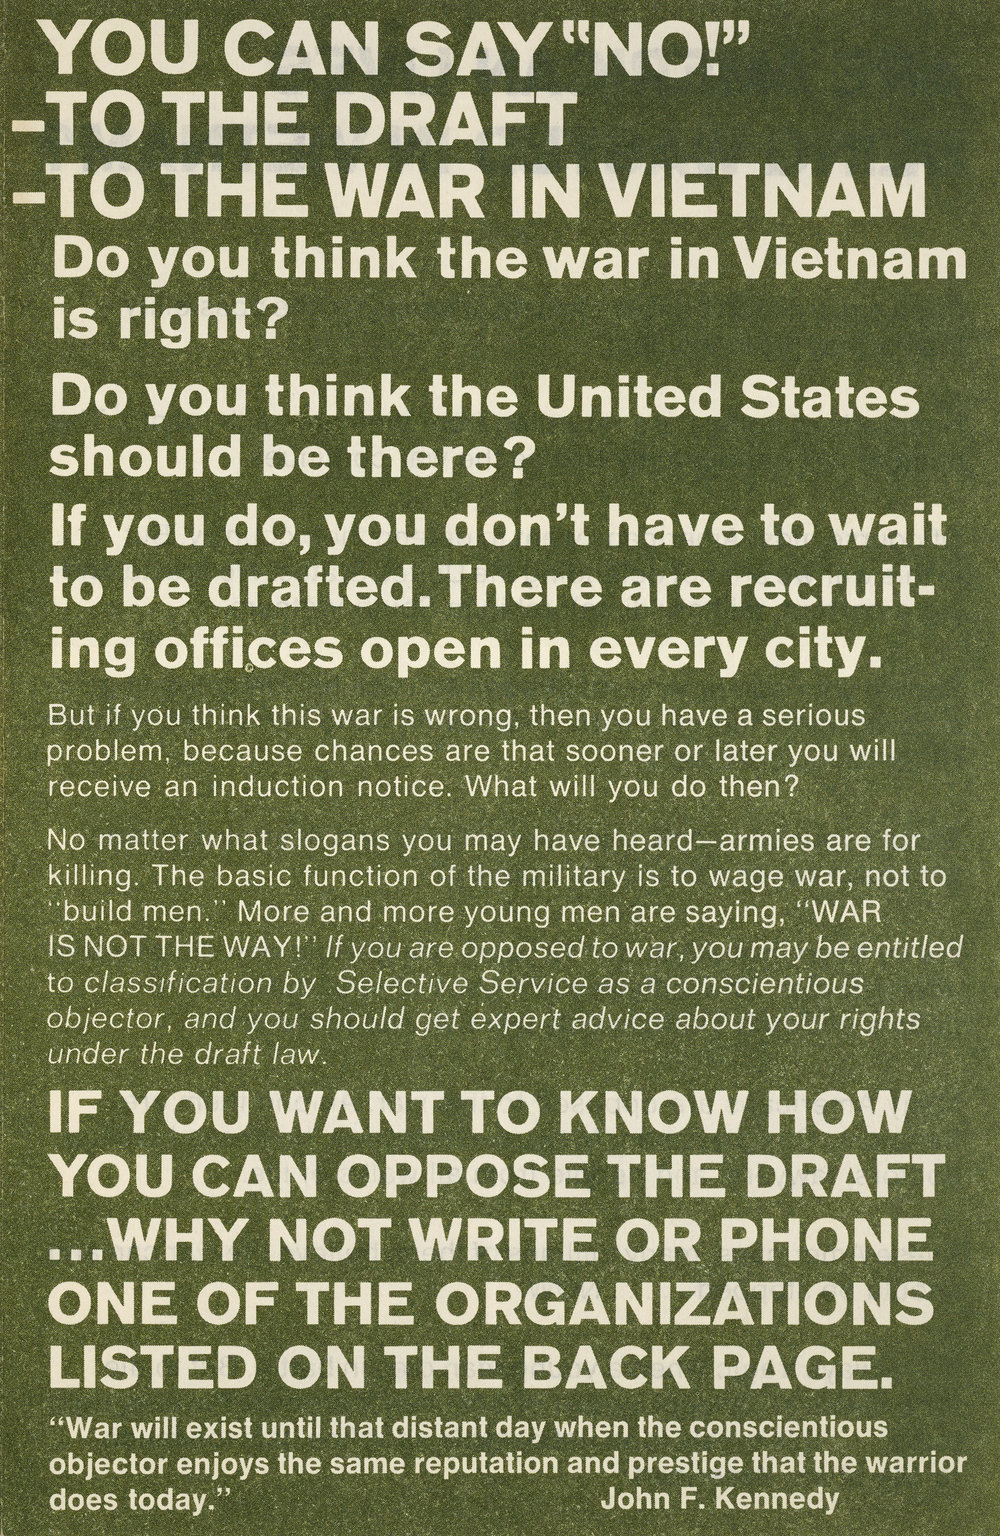 Say no to the draft pamphlet